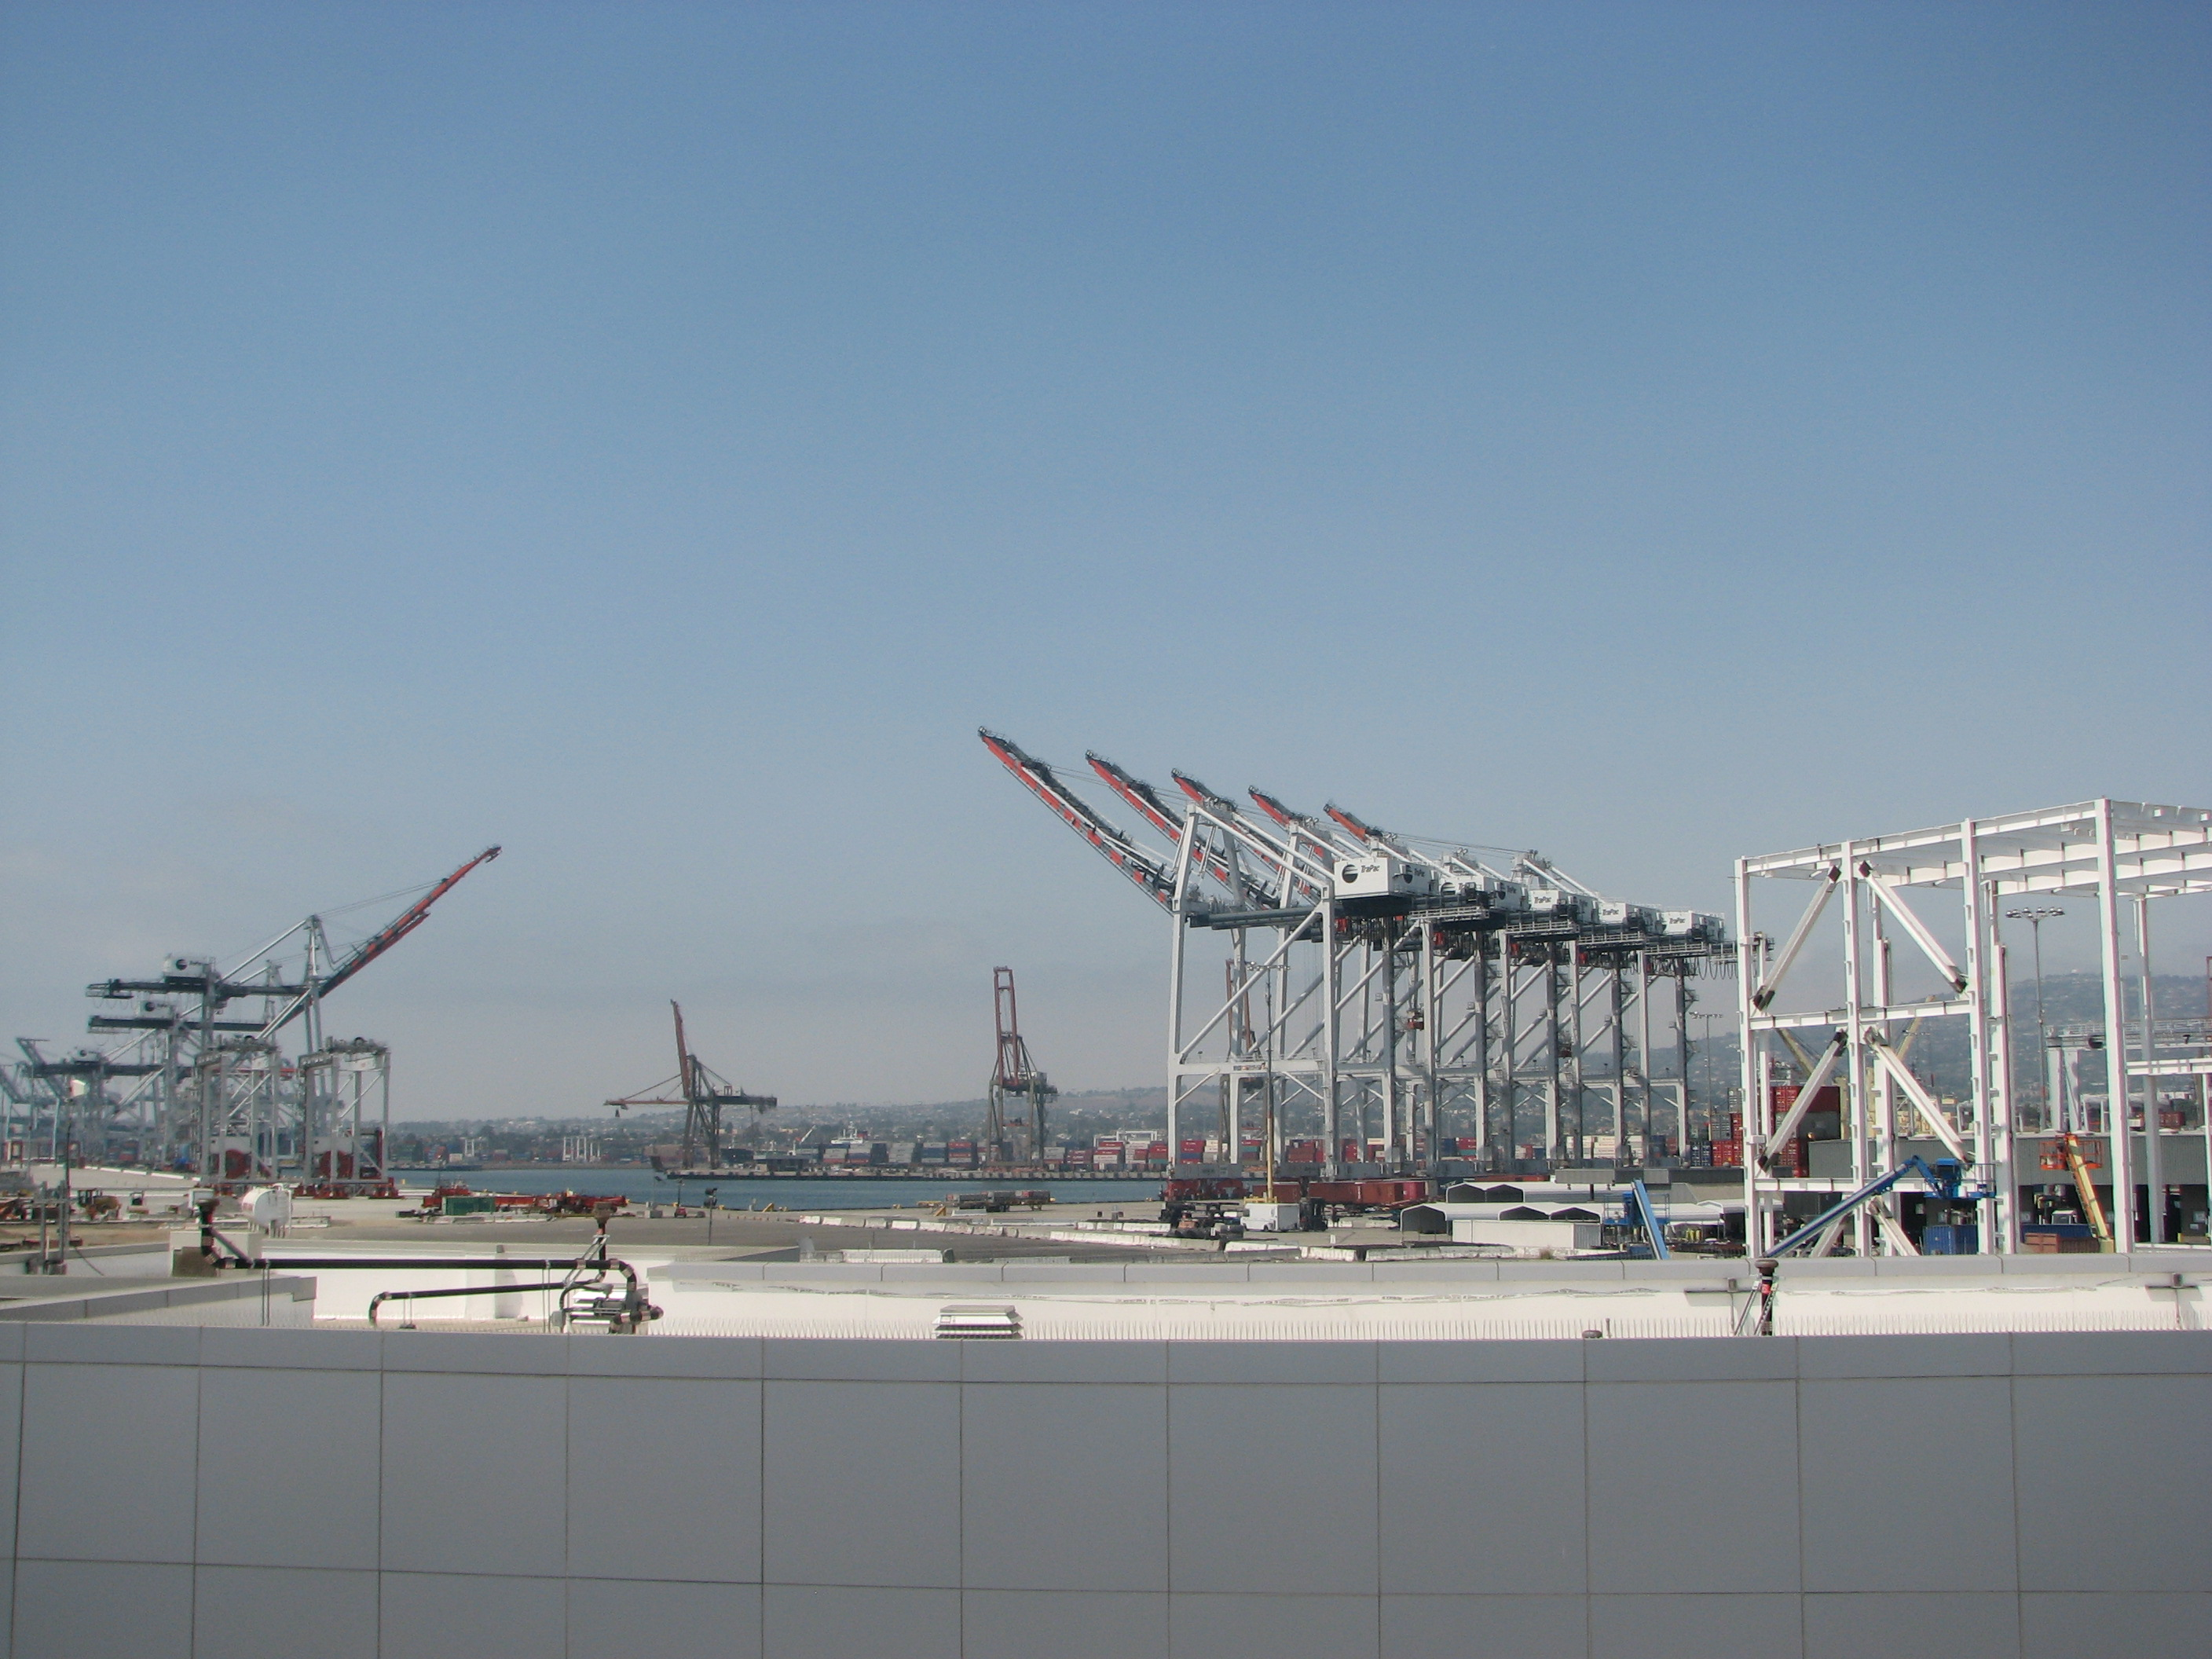 Port of Los Angeles, San Pedro, California, United States